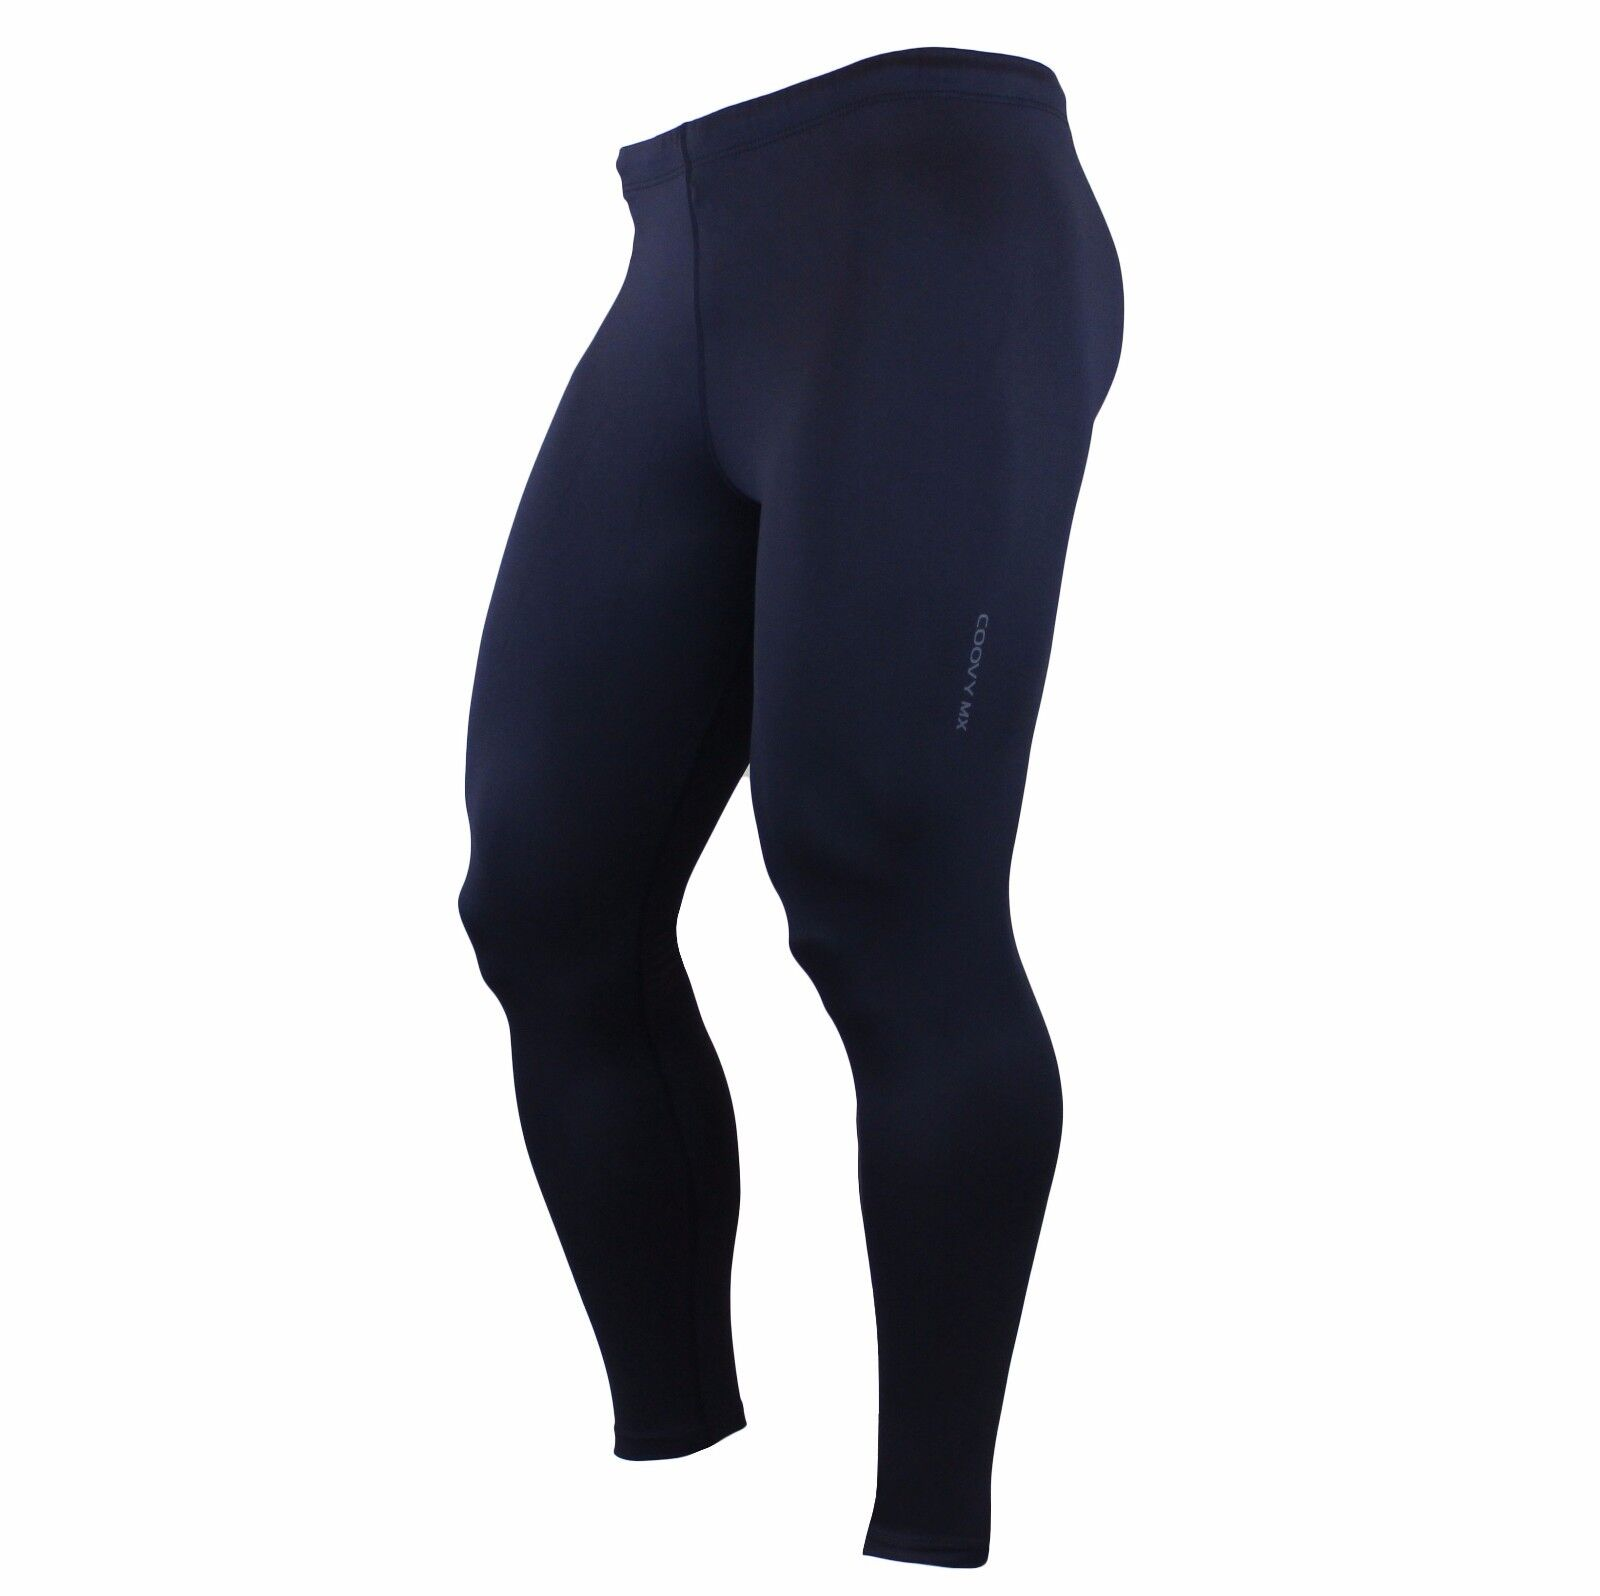 MX011 High Compression Tights